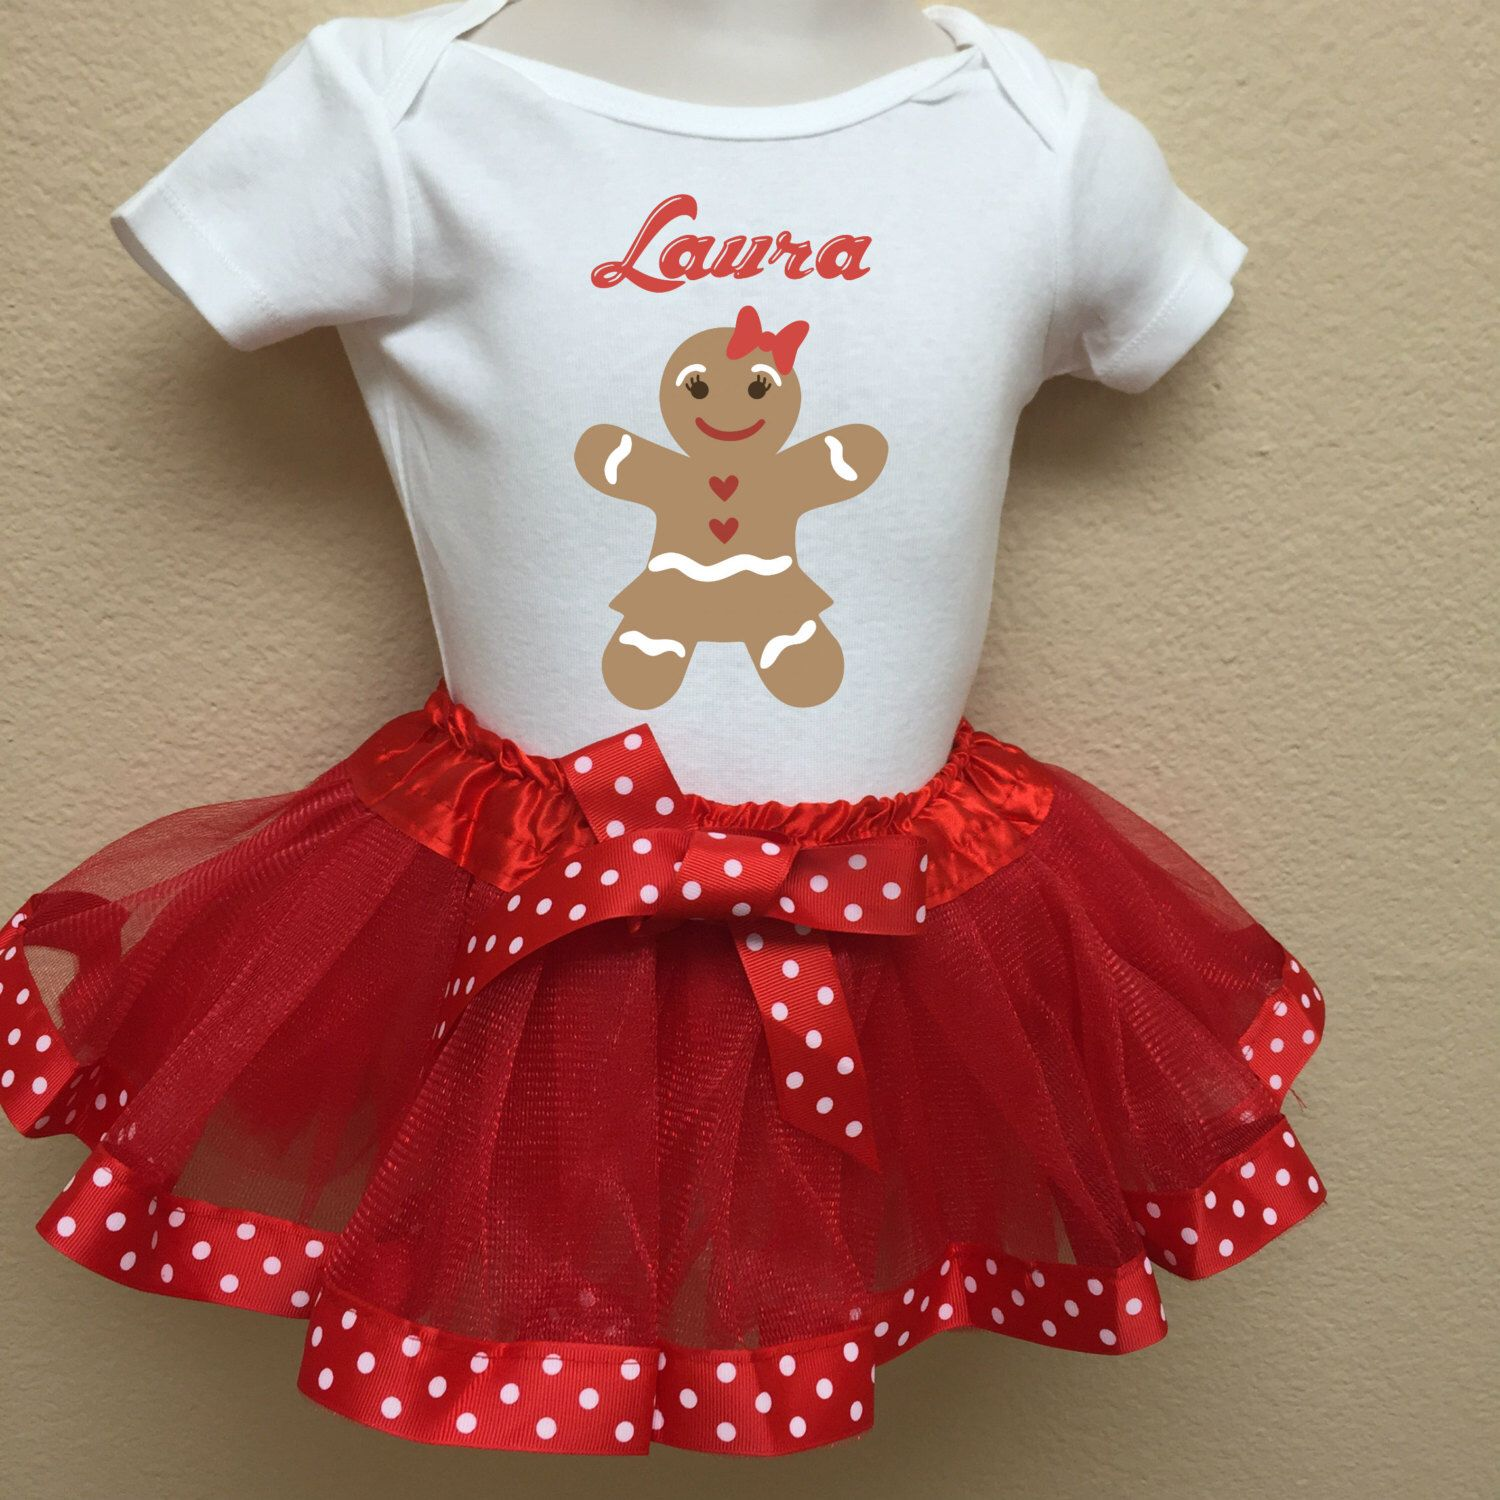 Personalized Cute Baby Girls Christmas Outfit Christmas Tutu Outfits With